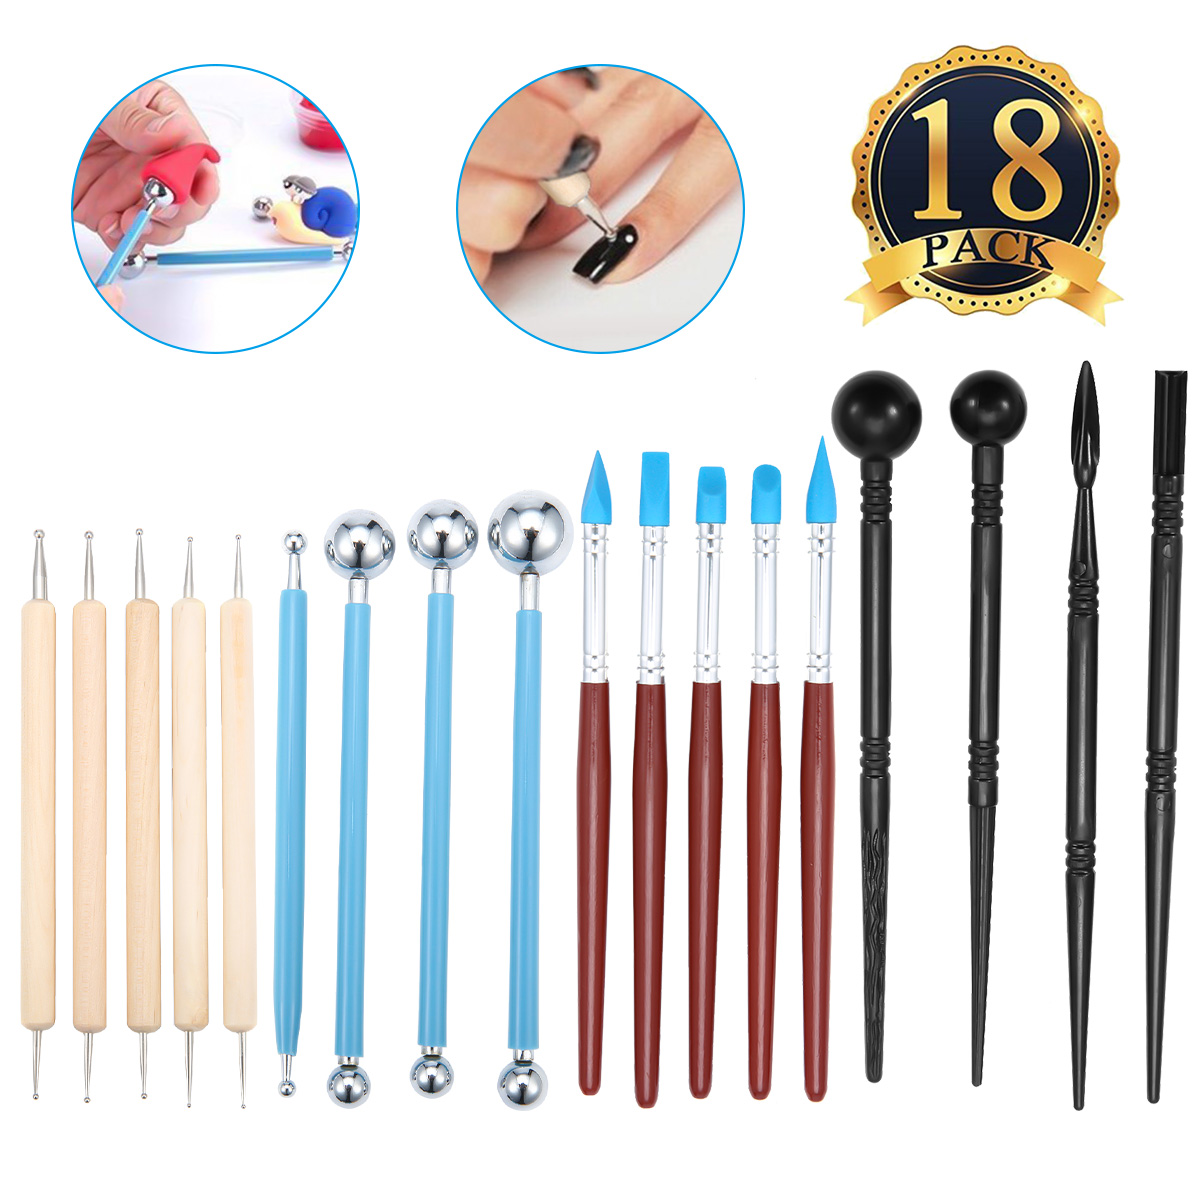 18PCS Ball Stylus Dotting Tools Clay Pottery Modeling Set Rock Painting Kit WITH 5 Clay Color Shaping Modeling Wipe Out Tools Rubber Tip Paint Brushes for Sculpture Pottery